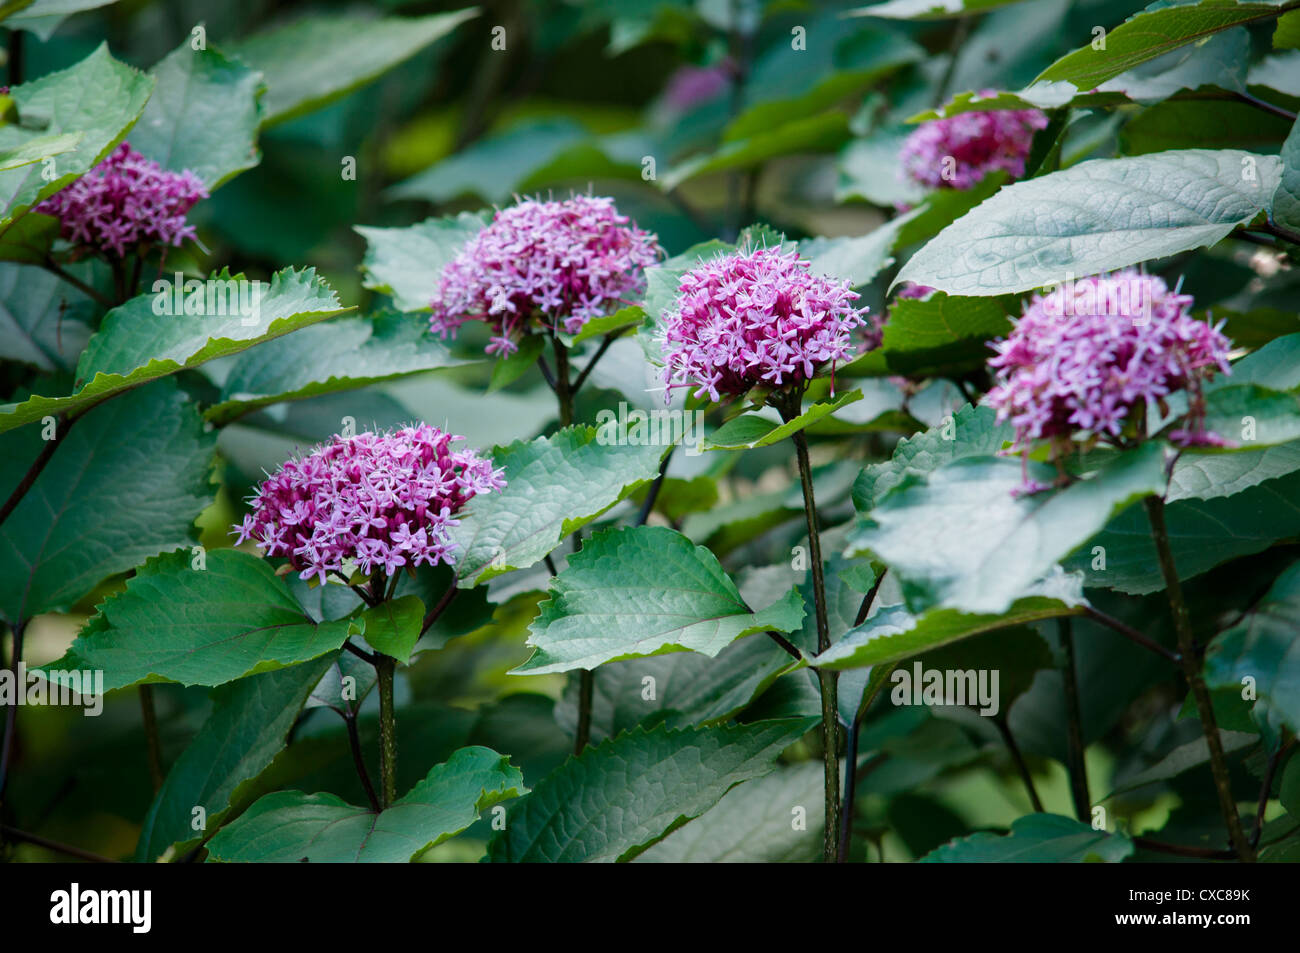 CLERODENDRUM BUNGEI FLOWERS Stock Photo: 50671759 - Alamy